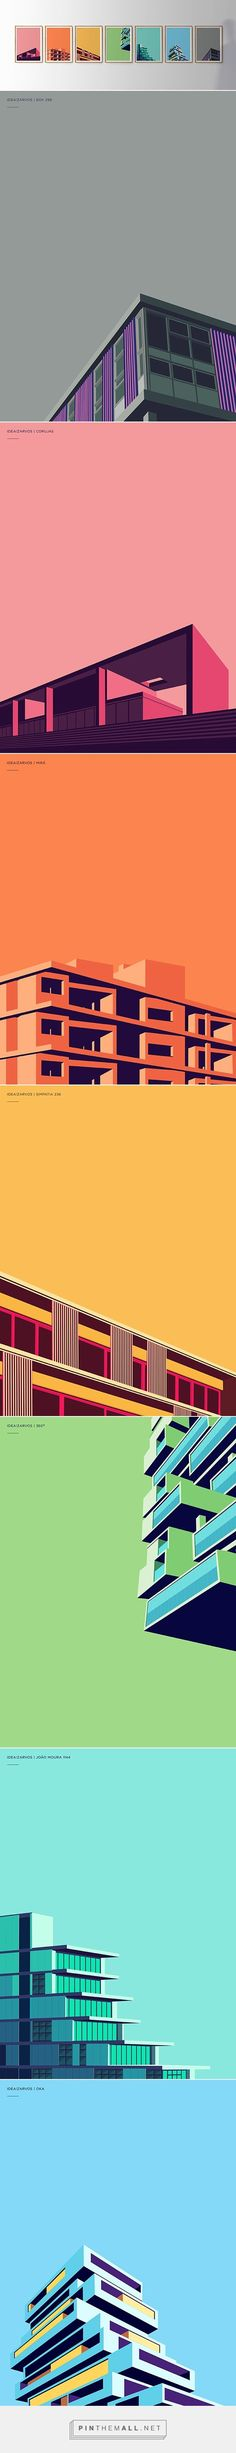 Very cool series of minimal architecture posters. The use of color is smart, not too overwhelming, and really complements elements of the building's design.